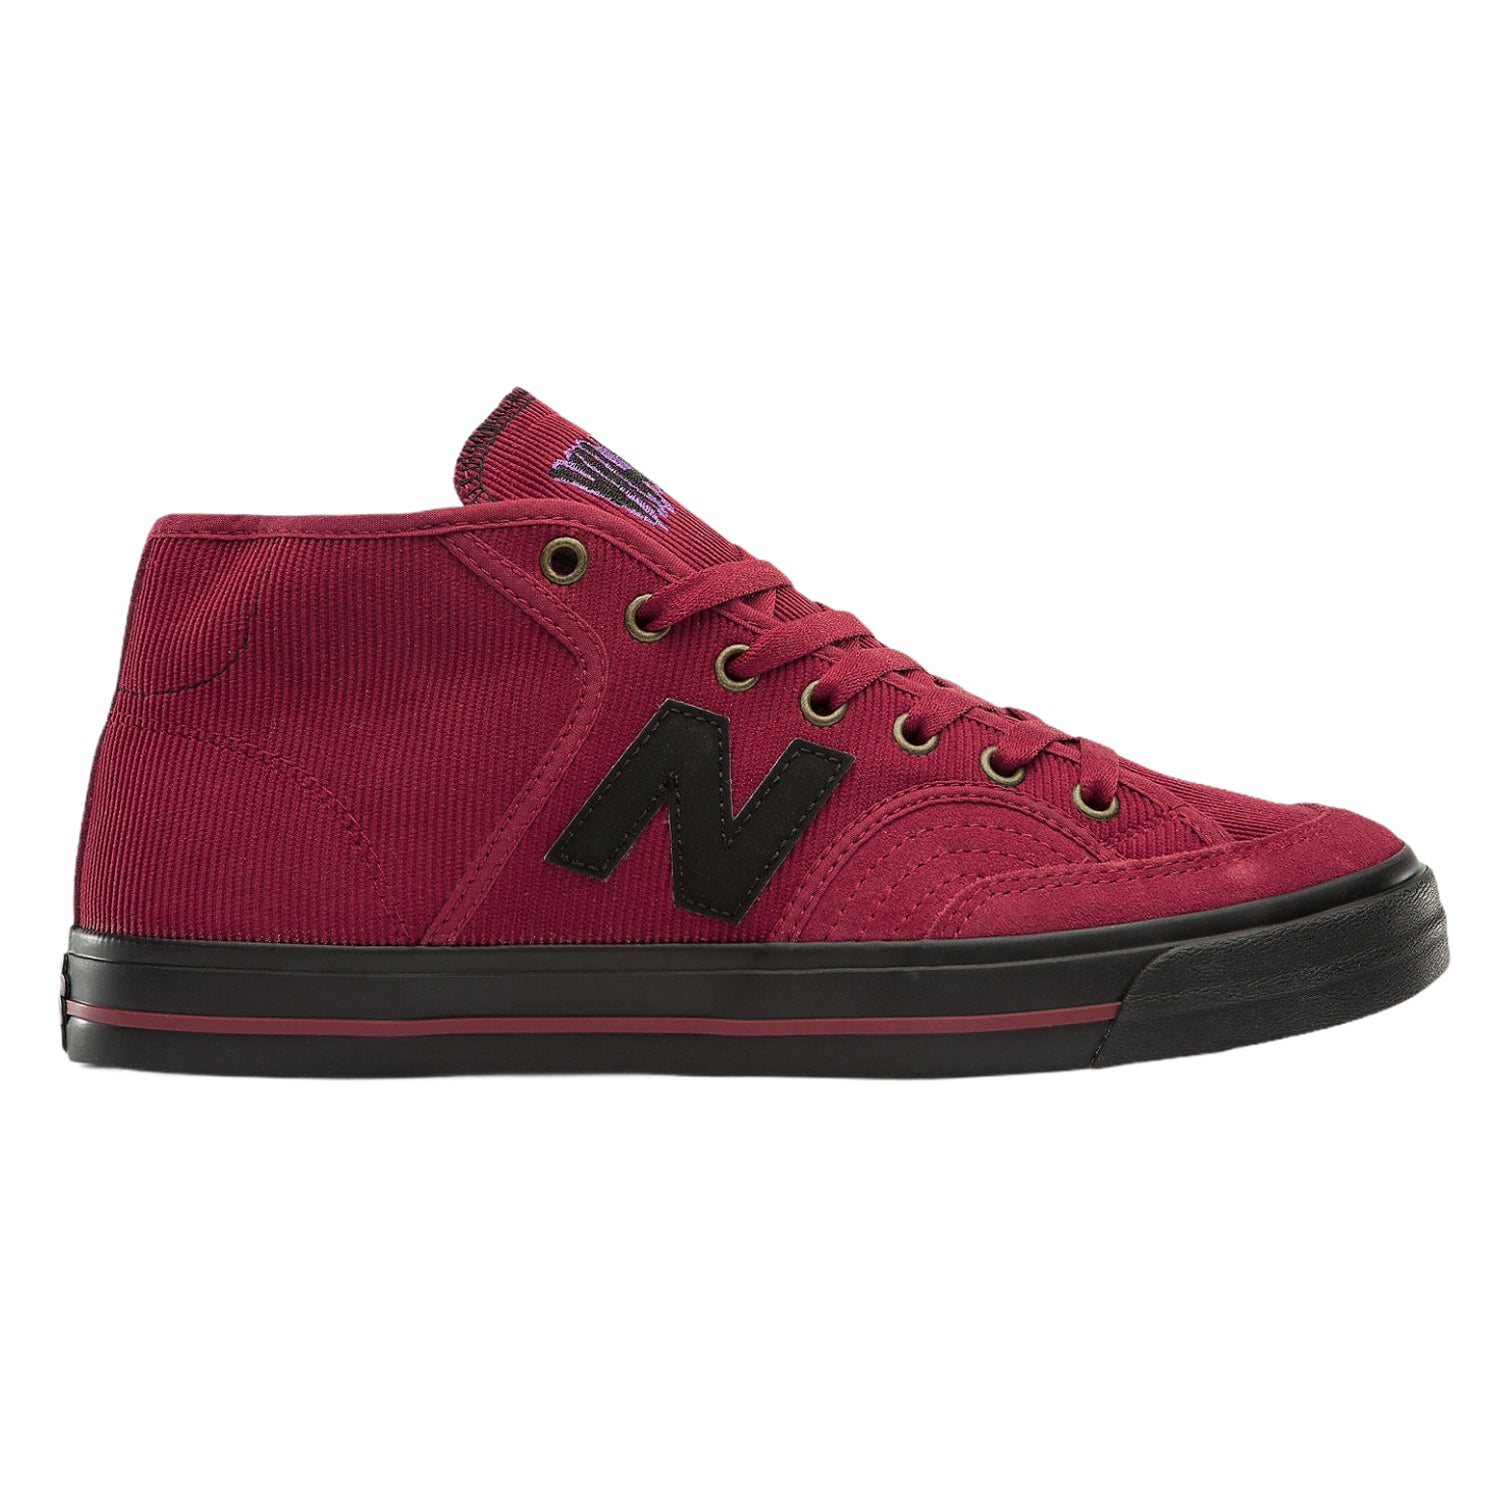 New Balance Numeric 213BAT Burgundy/Black Villani